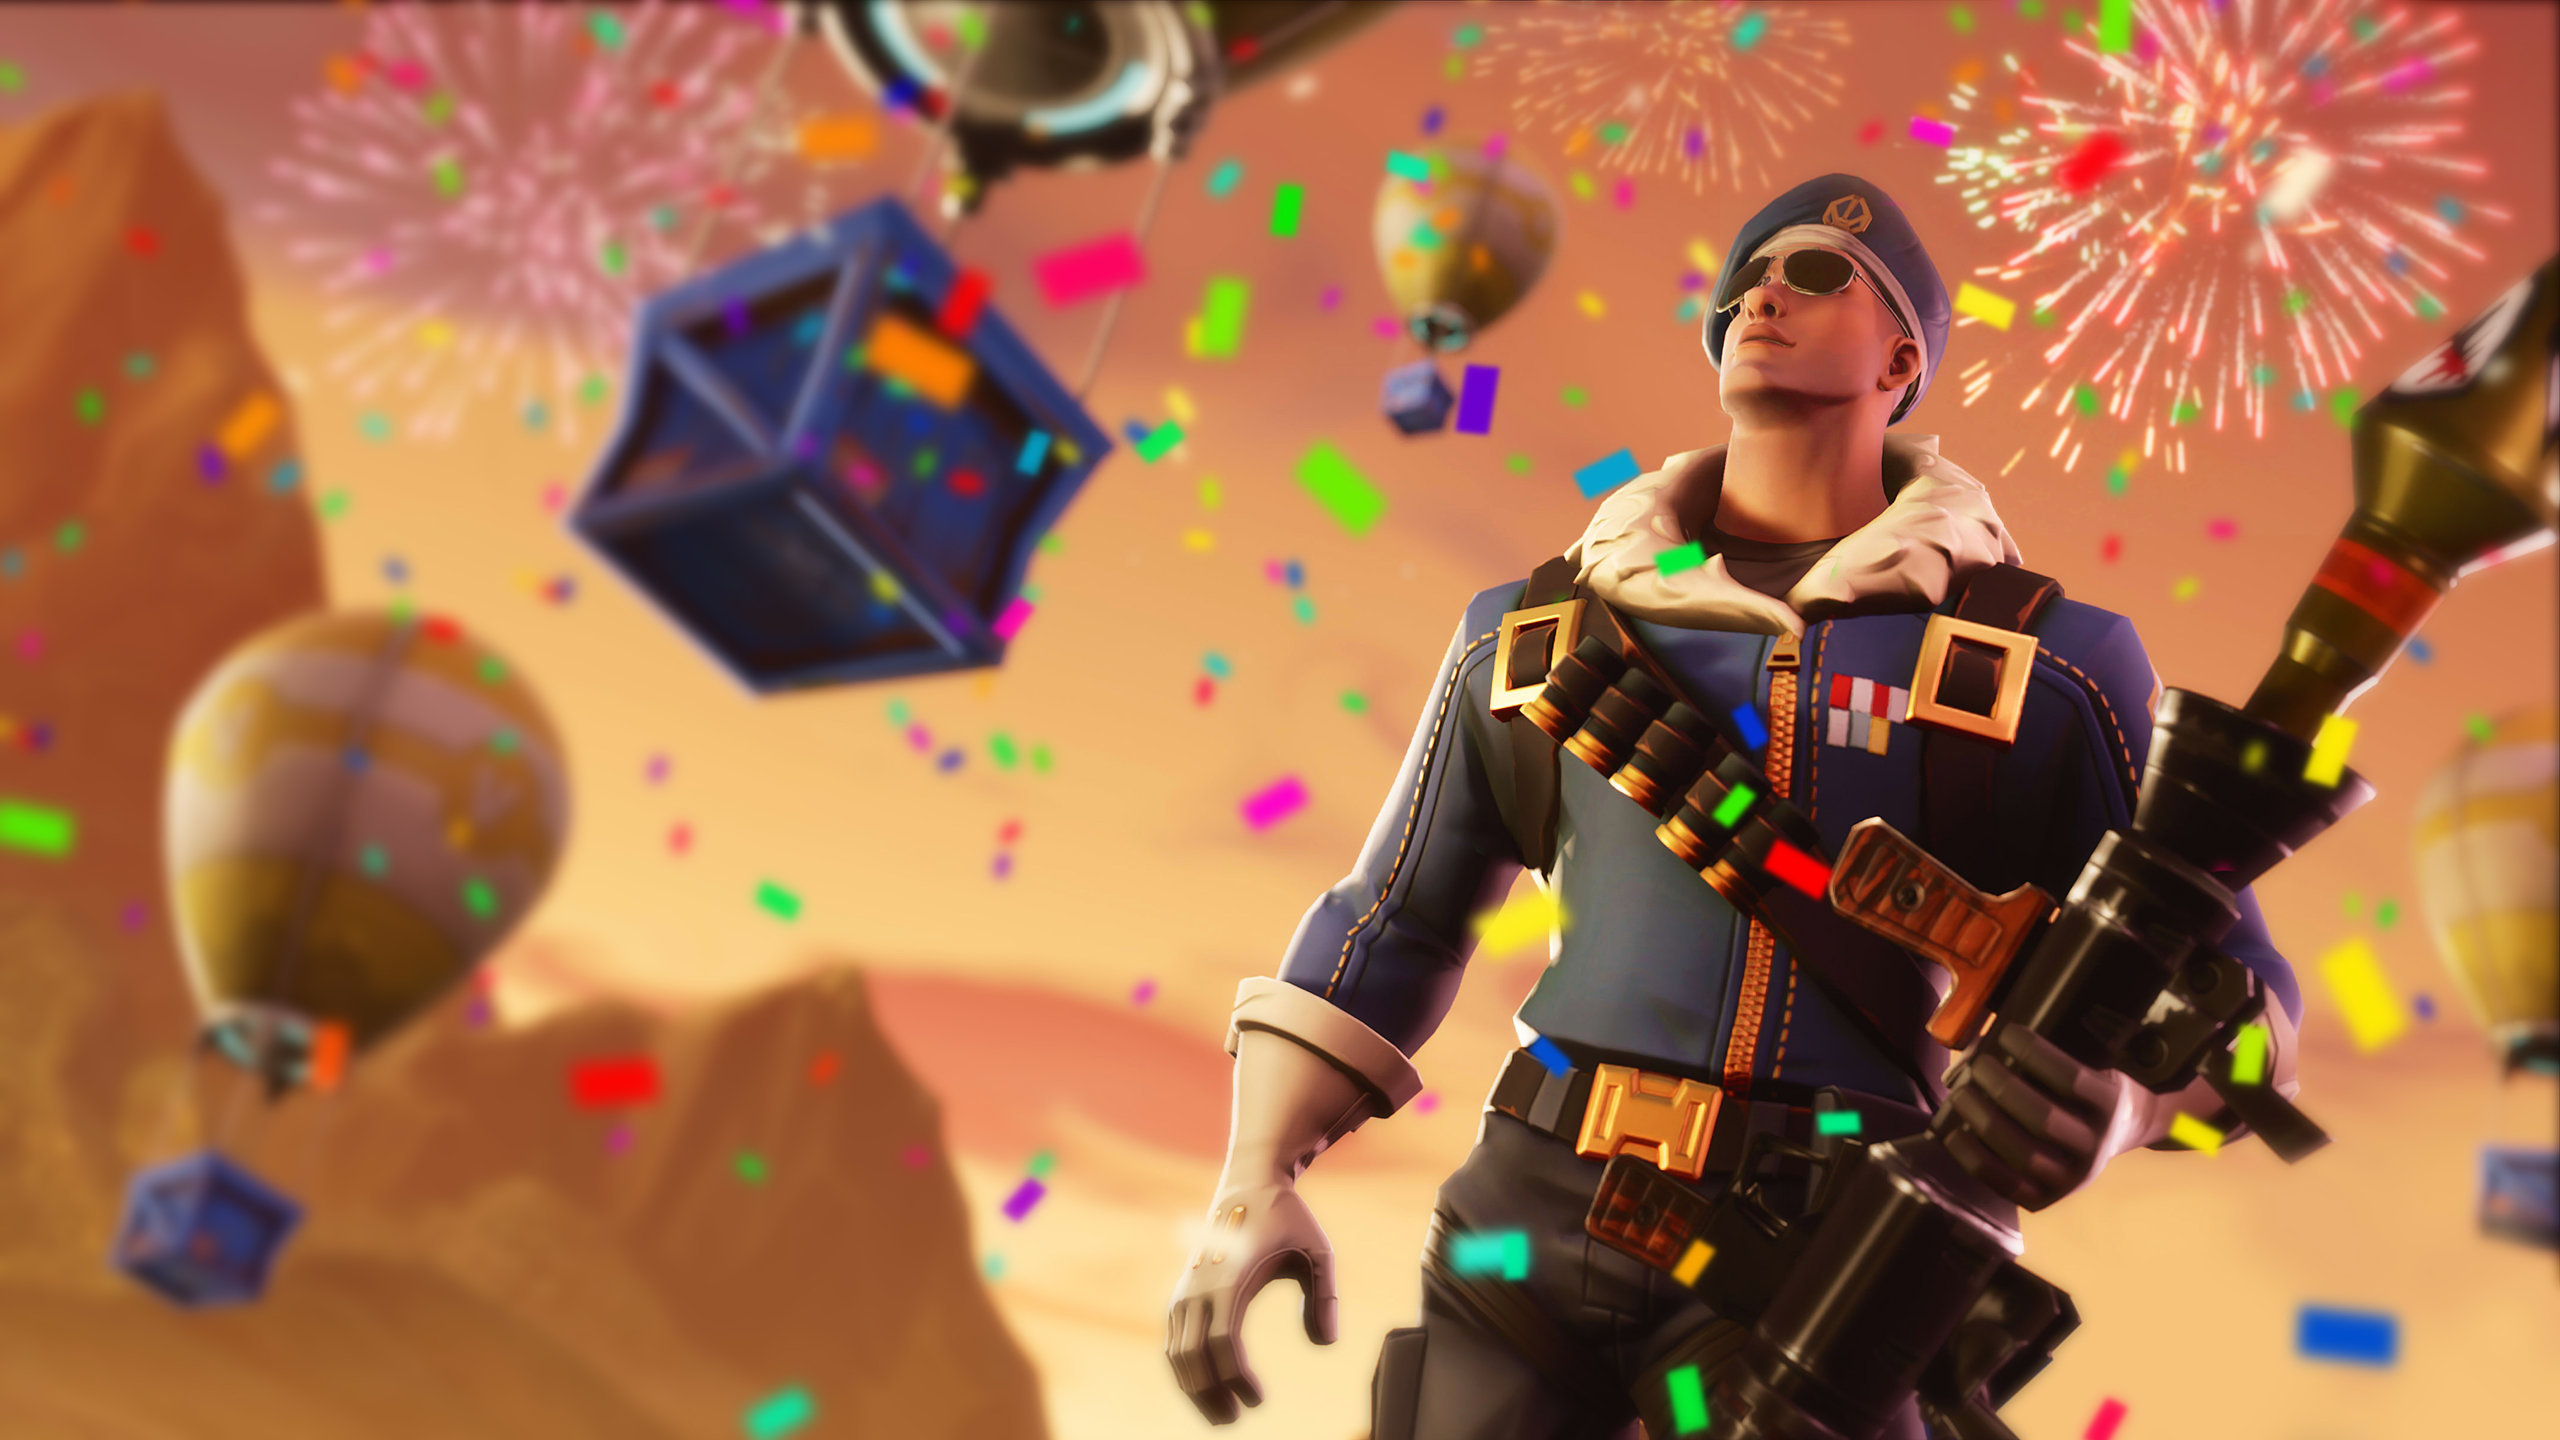 Fortnite Battle Royale Wallpapers that you have to use